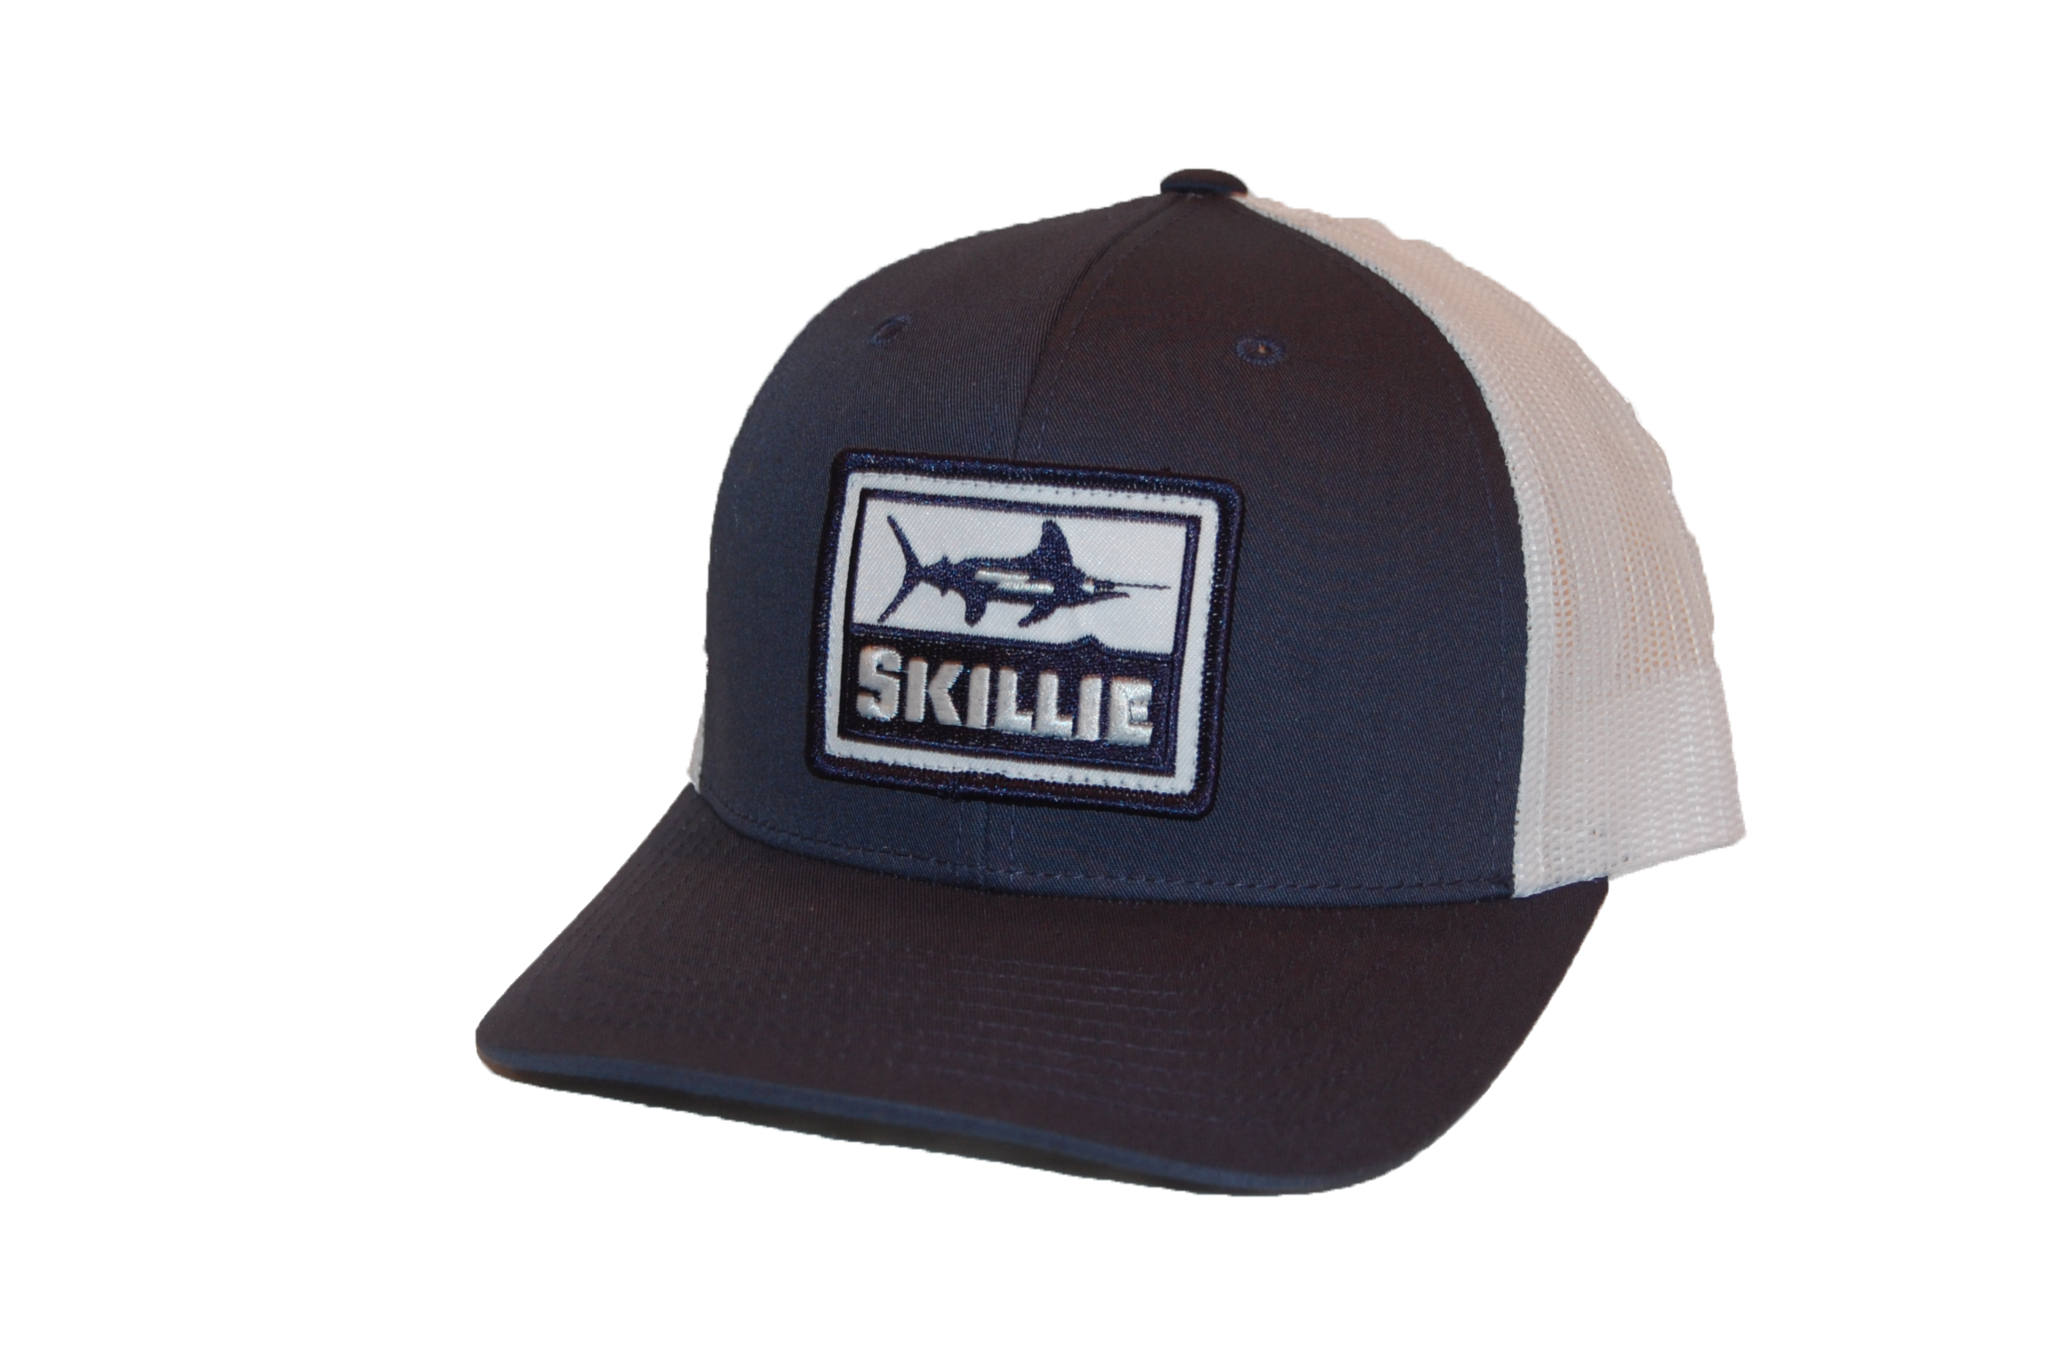 a90356ad83c34 Skillie Pre Curved Trucker Hat - ShopSkillie